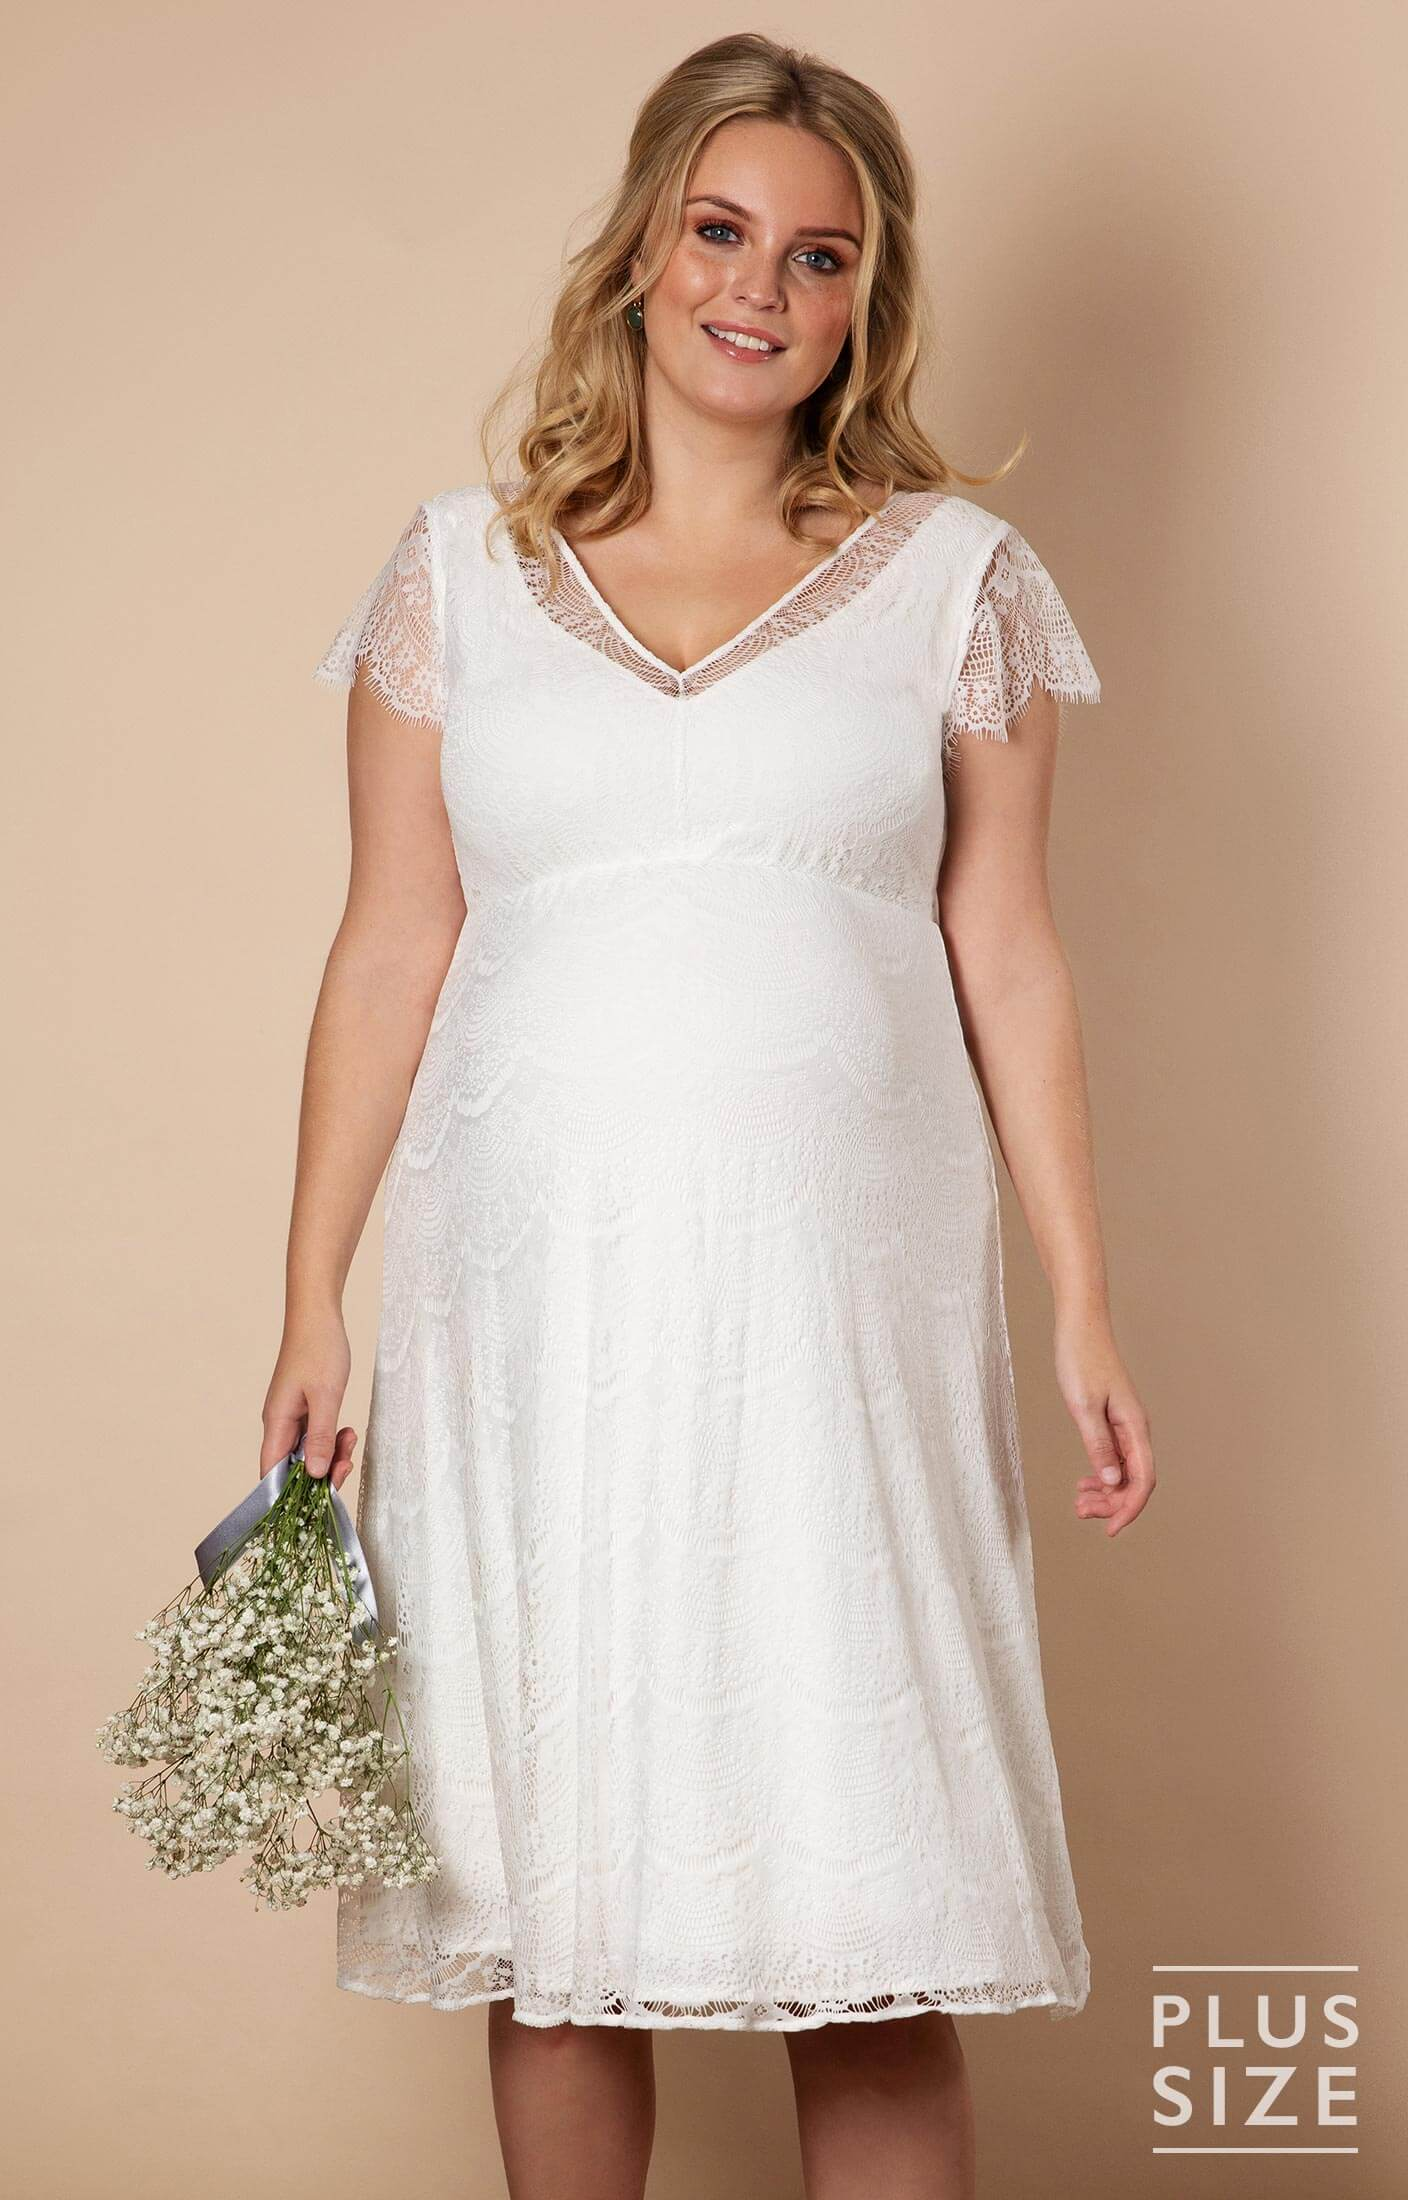 Kristin Plus Size Maternity Wedding Dress Ivory White - Maternity Wedding  Dresses, Evening Wear and Party Clothes by Tiffany Rose